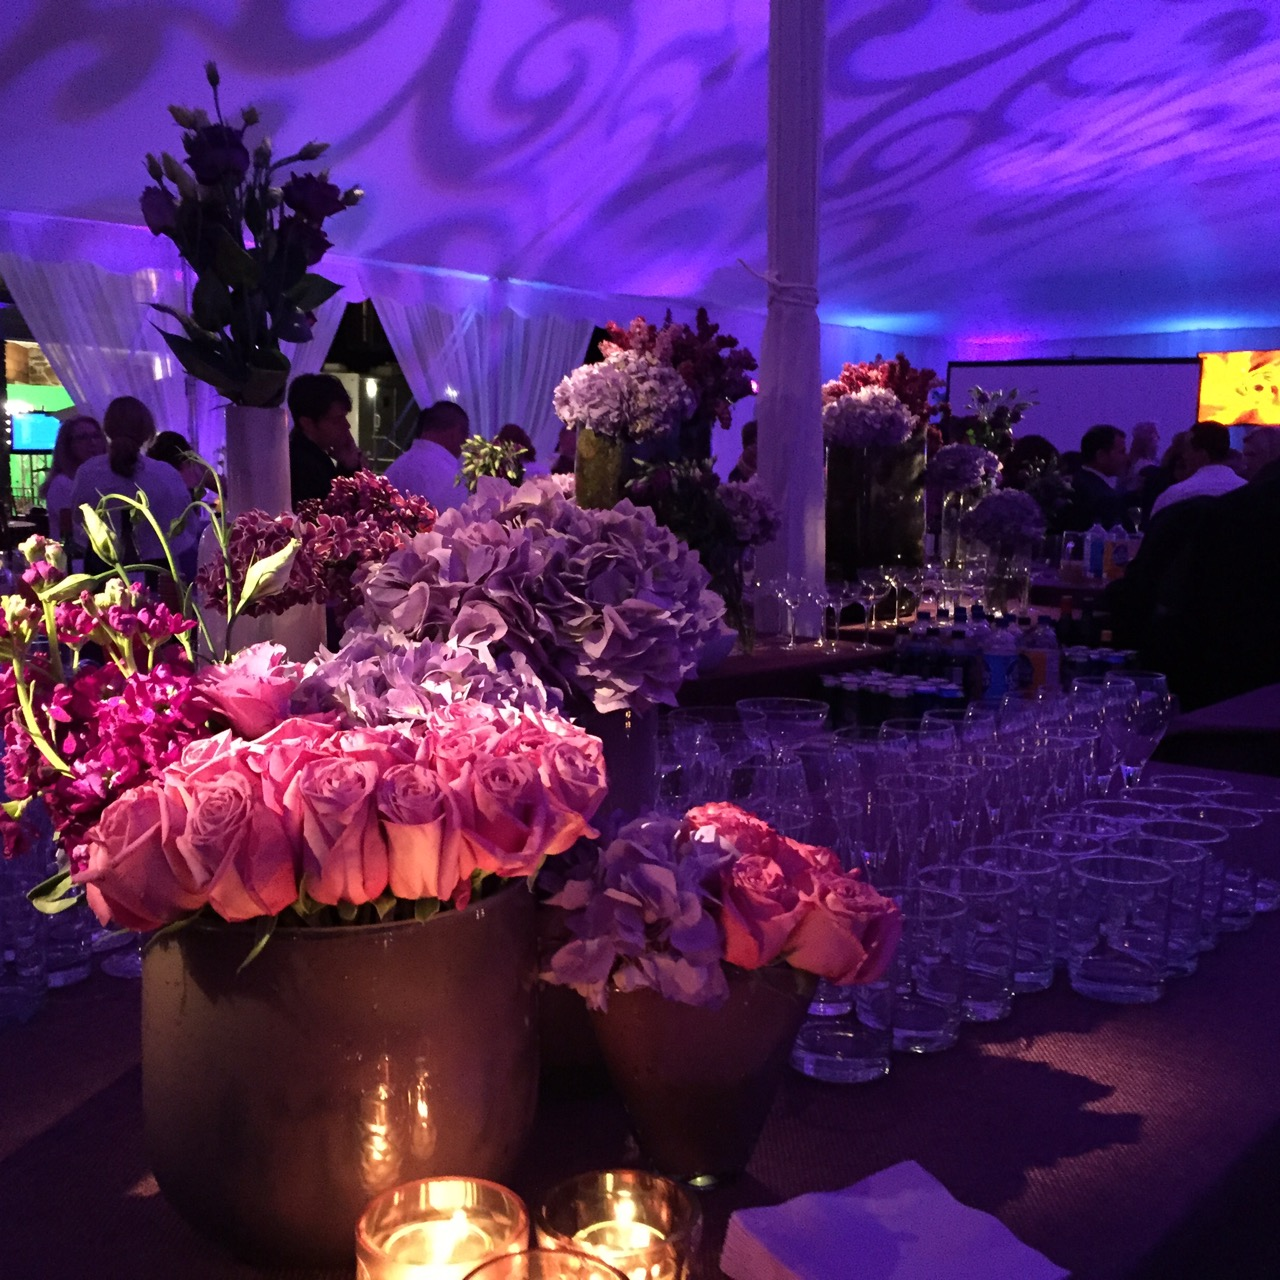 Eggsotic+Events+NJ+Event+Design+Lighting+Decor+Rental++-+9.jpg